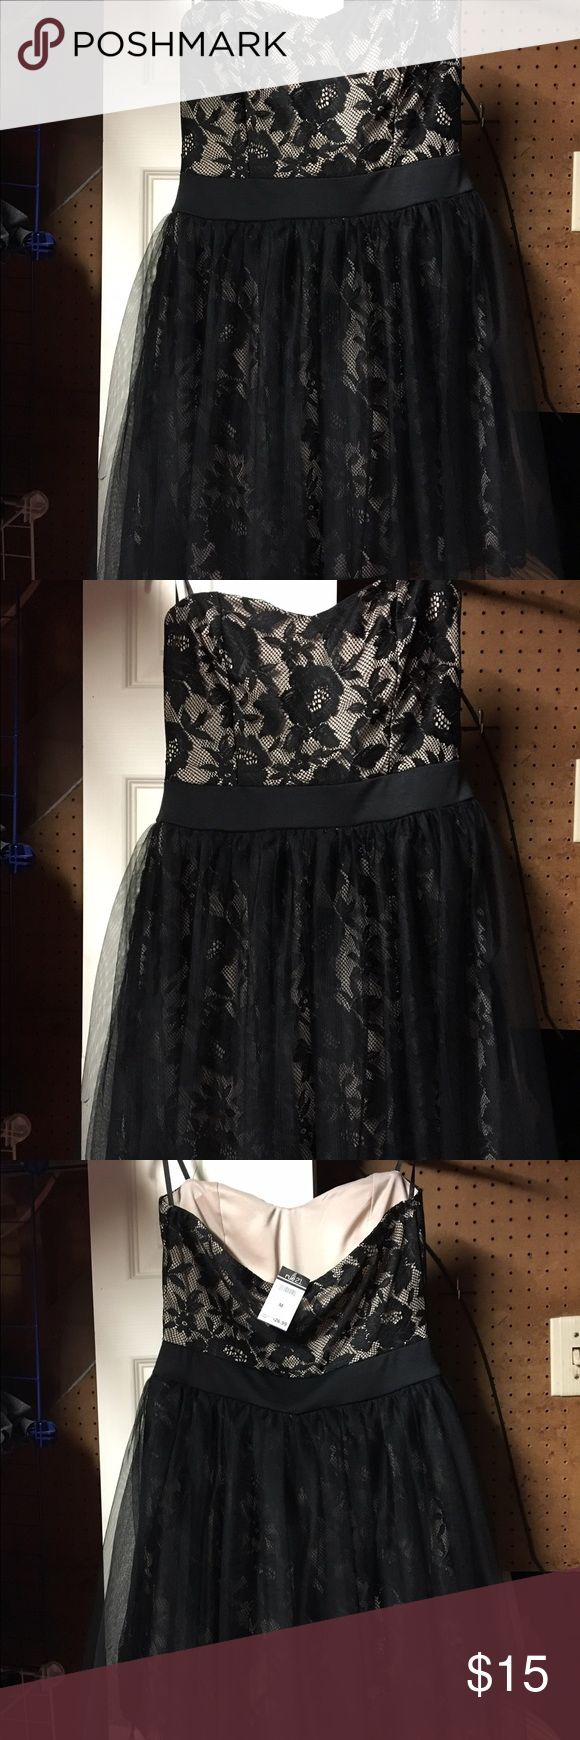 Black and Cream cocktail dress from Rue 21 It has a flower design pattern and is laced. It is a strapless dress. It has never been worn and still has the tags on it. Rue 21 Dresses Strapless